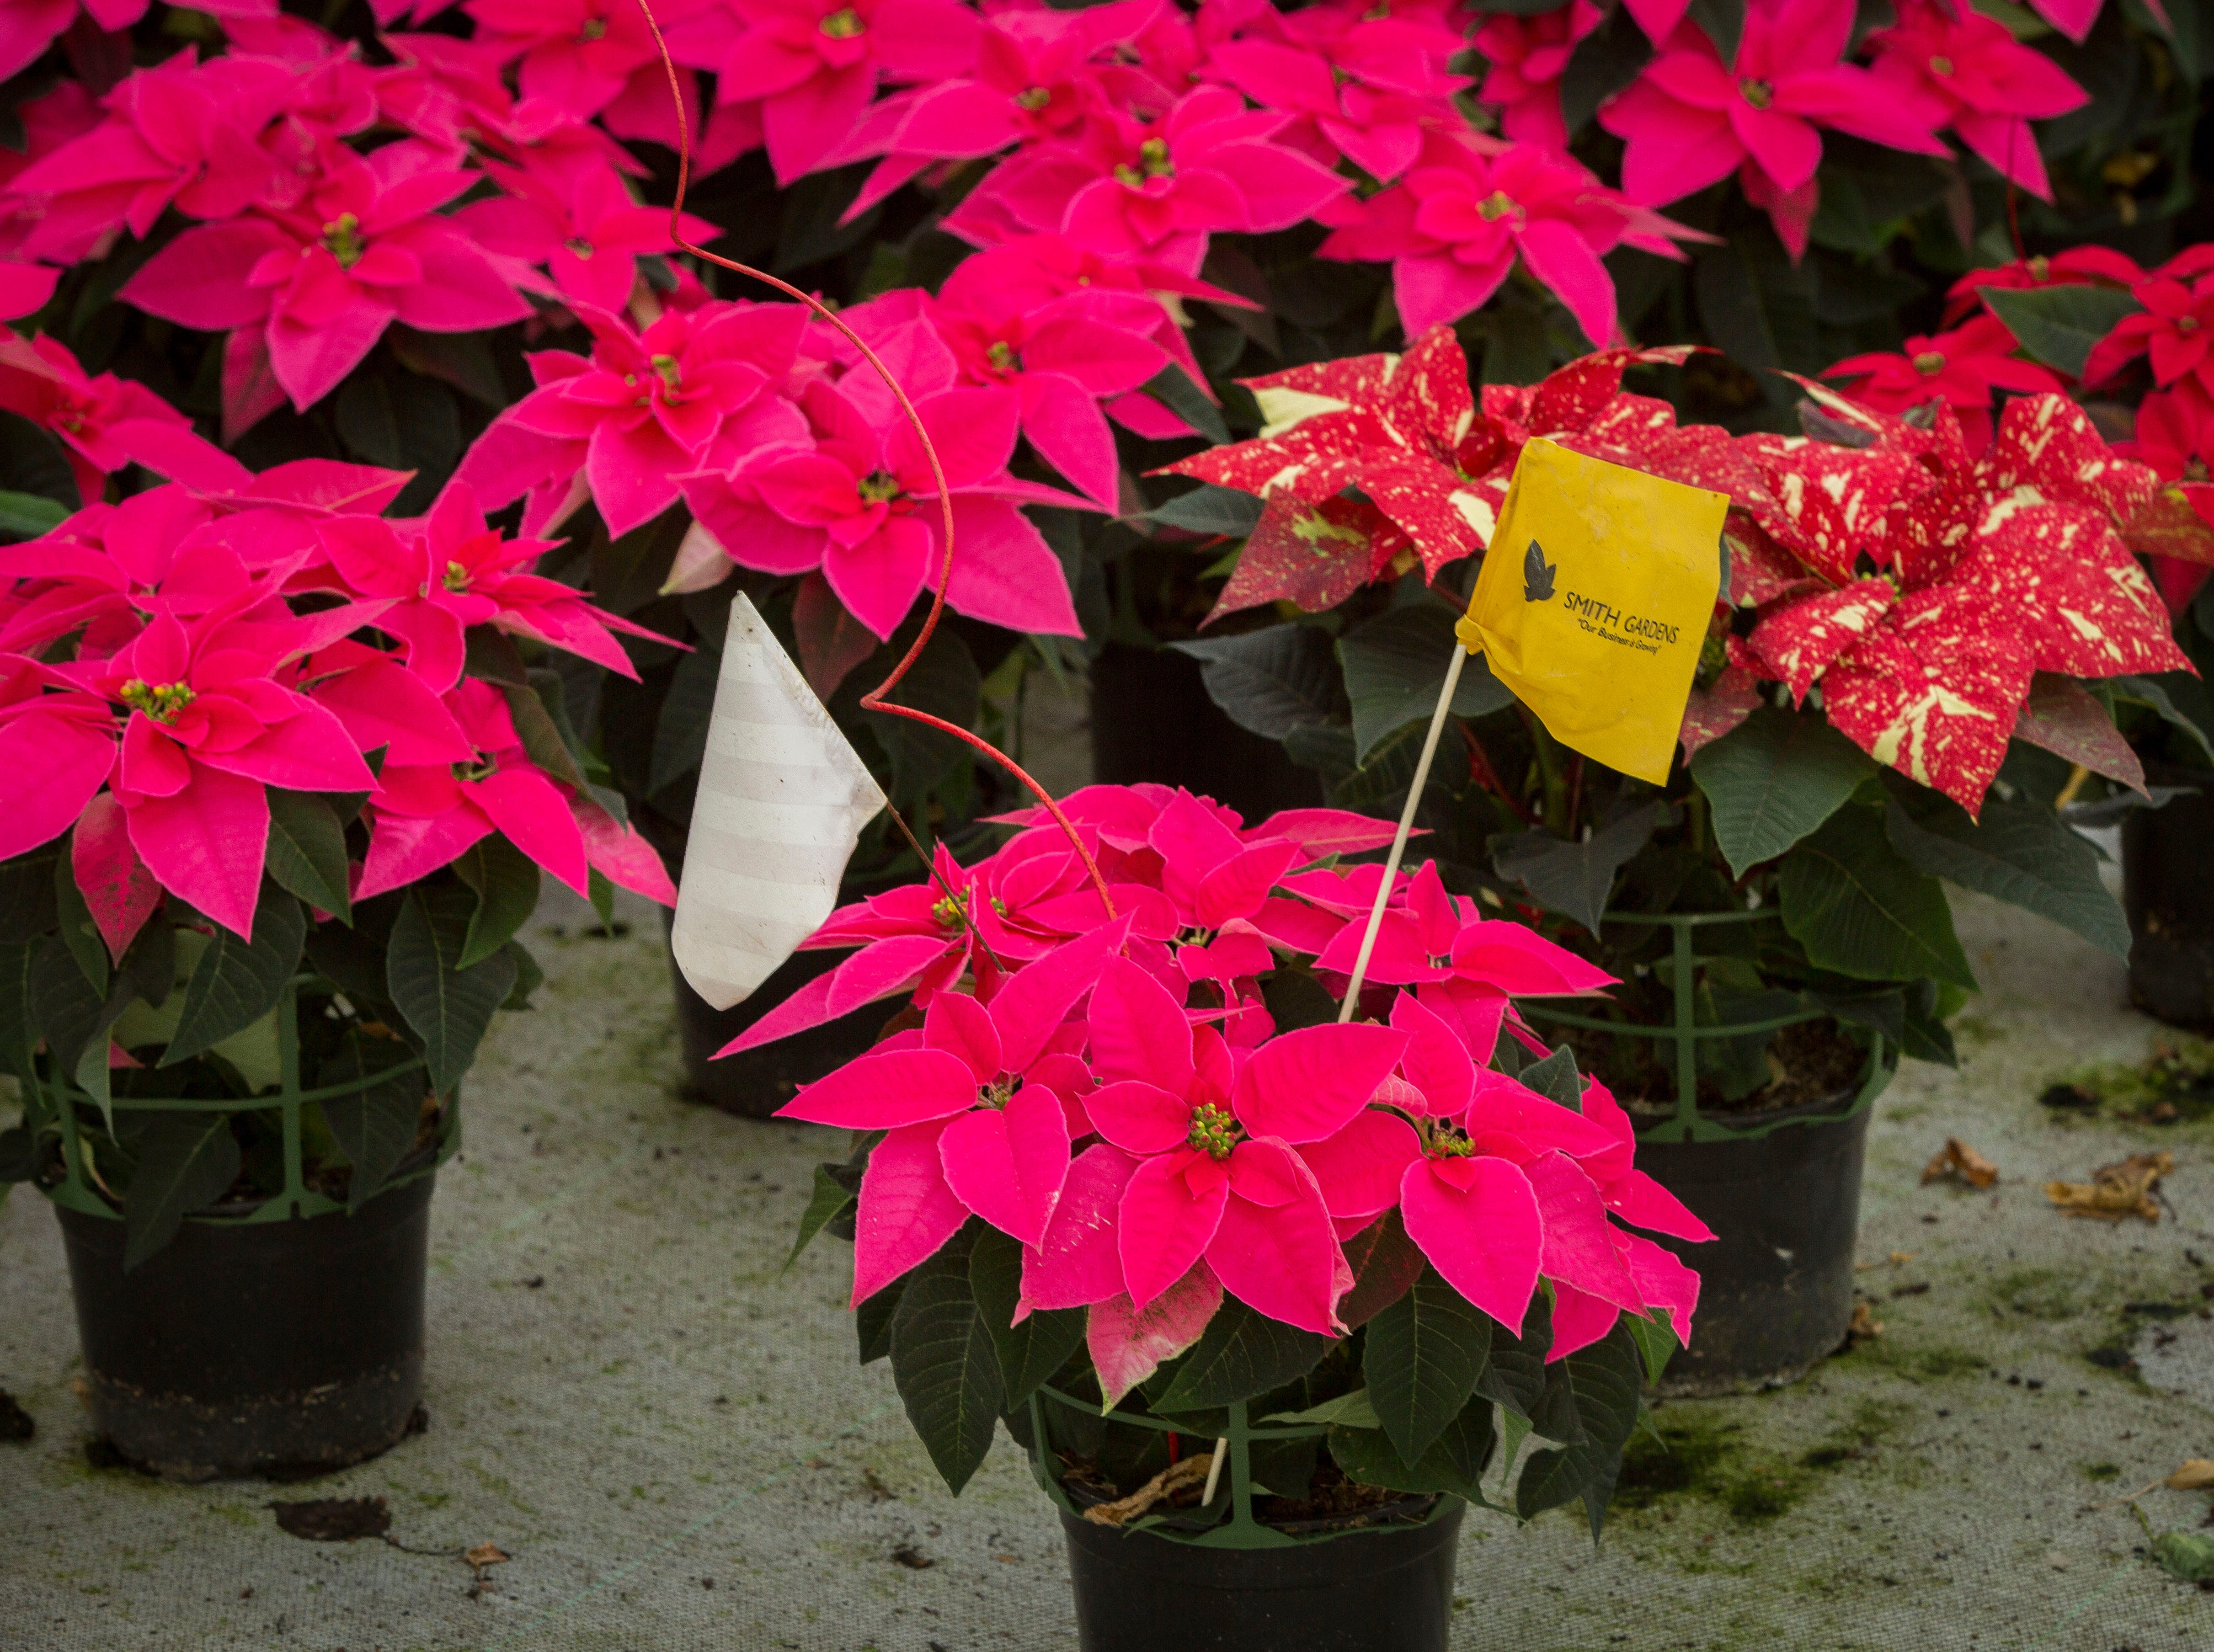 The Princettia Pink is a hybrid variety of traditional poinsettia plants, popular among millennials, are ready for packaging at Smith Gardens in Aurora, Oregon Friday November, 30, 2018. The plants will be packaged for one of the last shipments of the year in early December and be delivered to local big box stores.